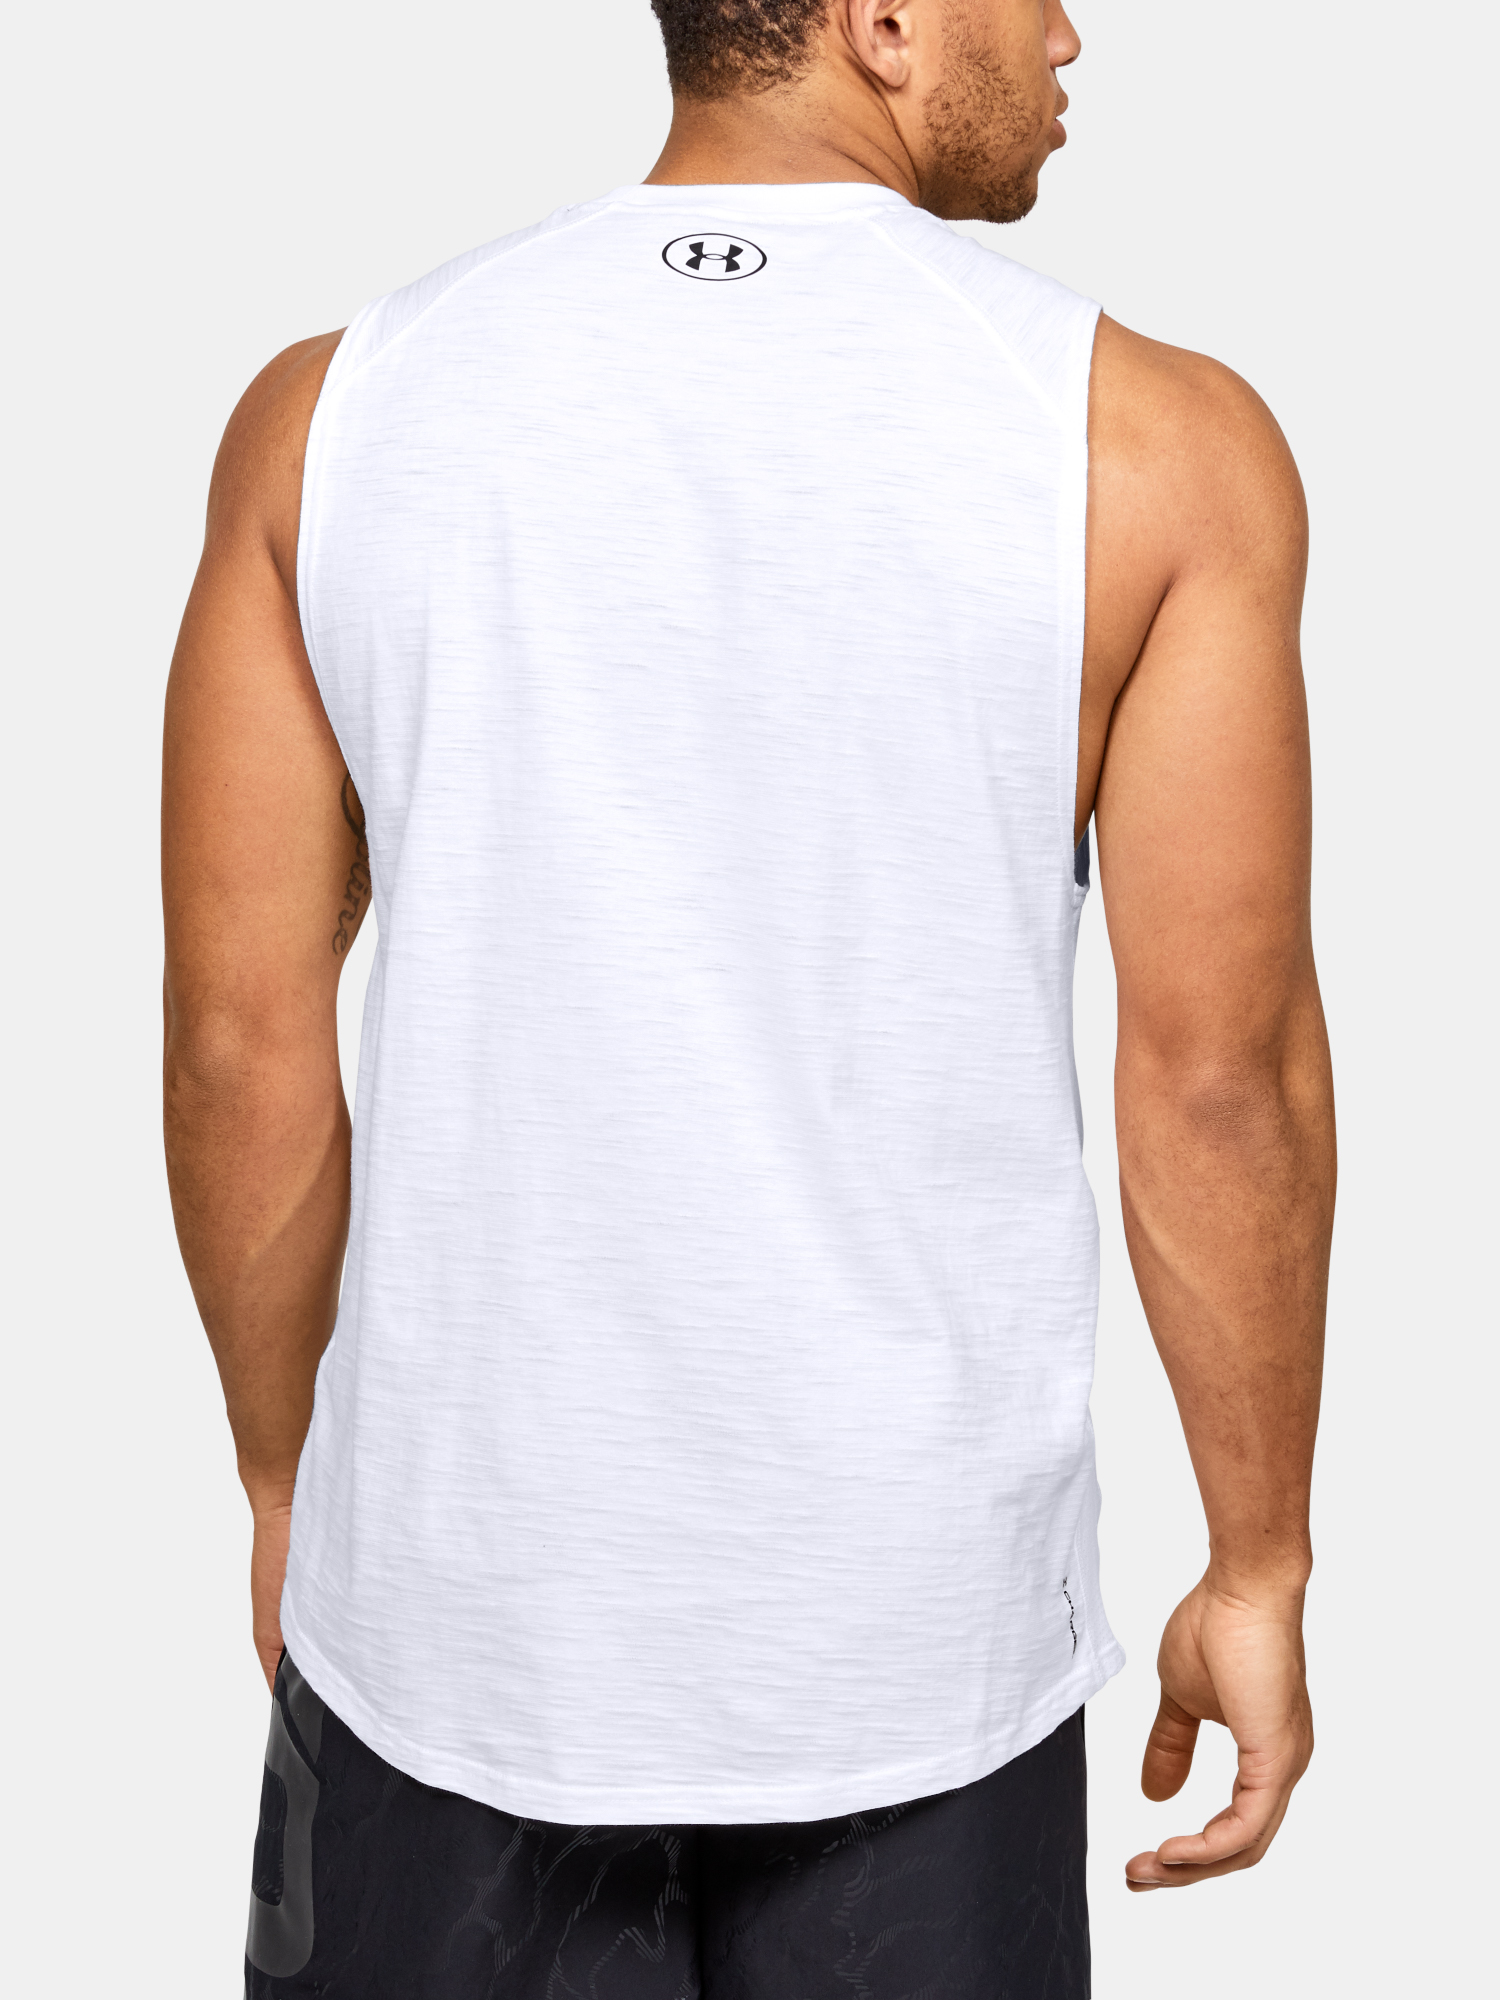 Tričko Under Armour Charged Cotton Tank (2)